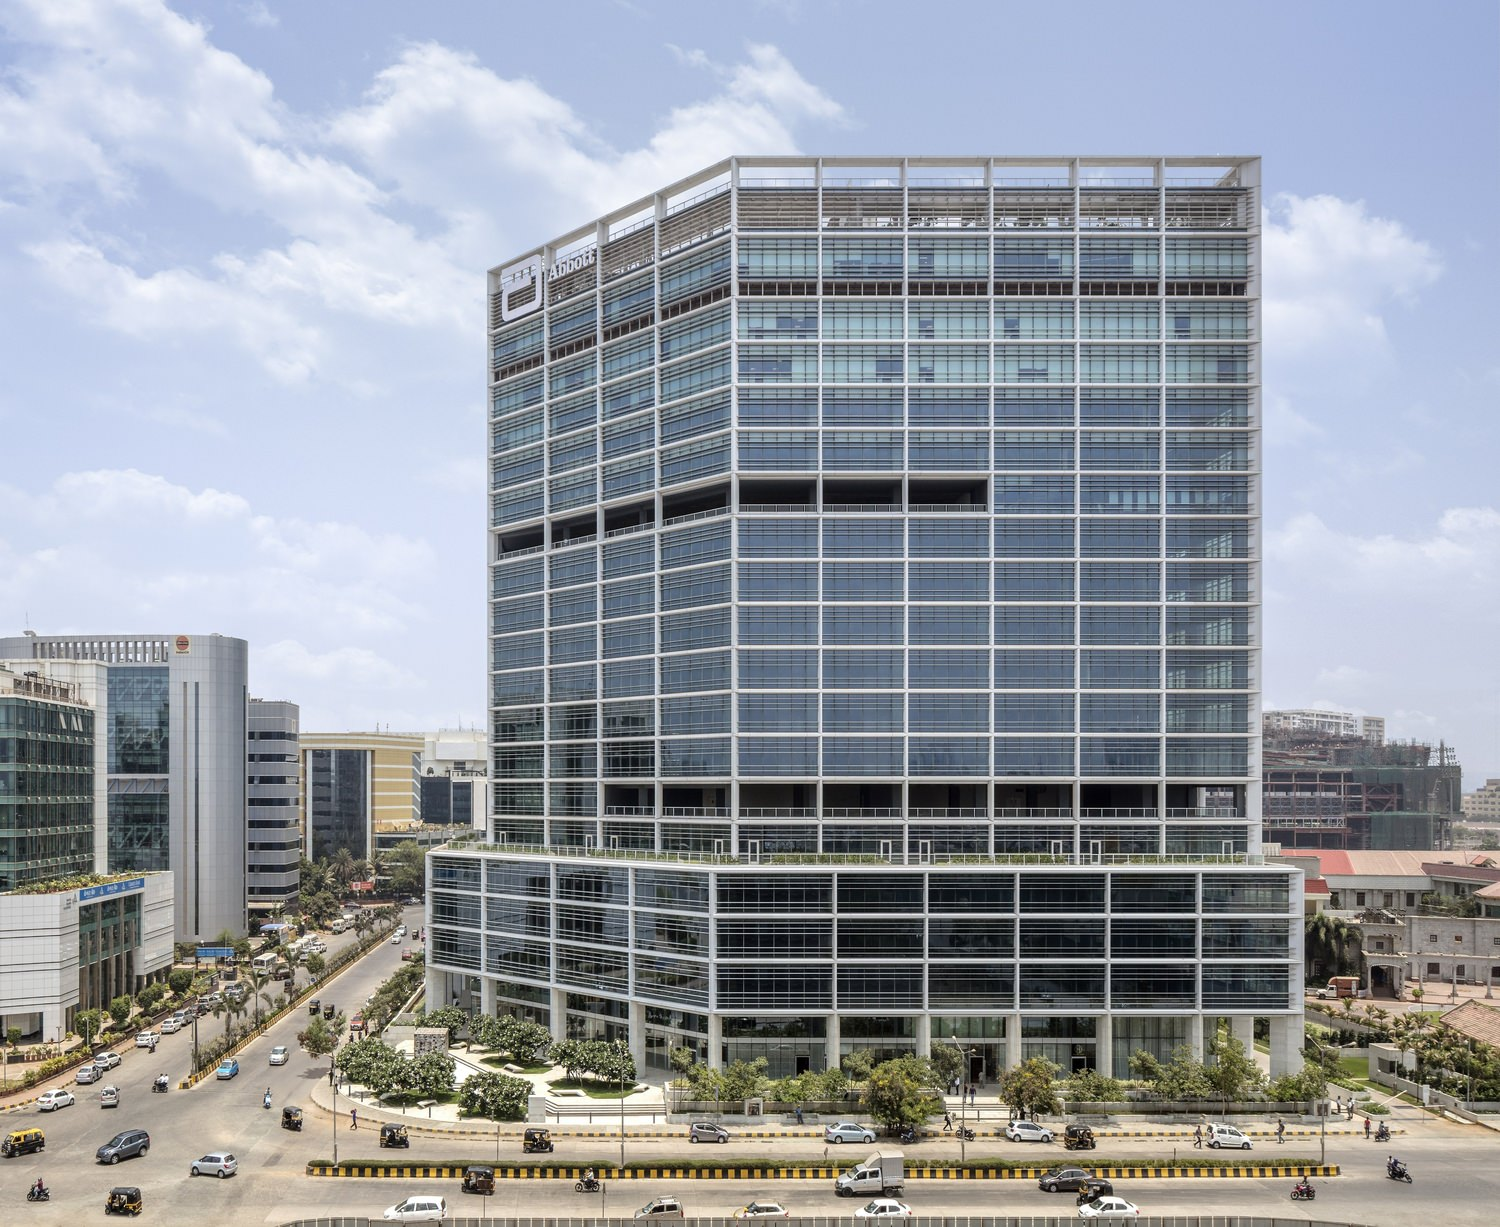 A tall office building that is located on a corner in a downtown area and has trees at the base of it.